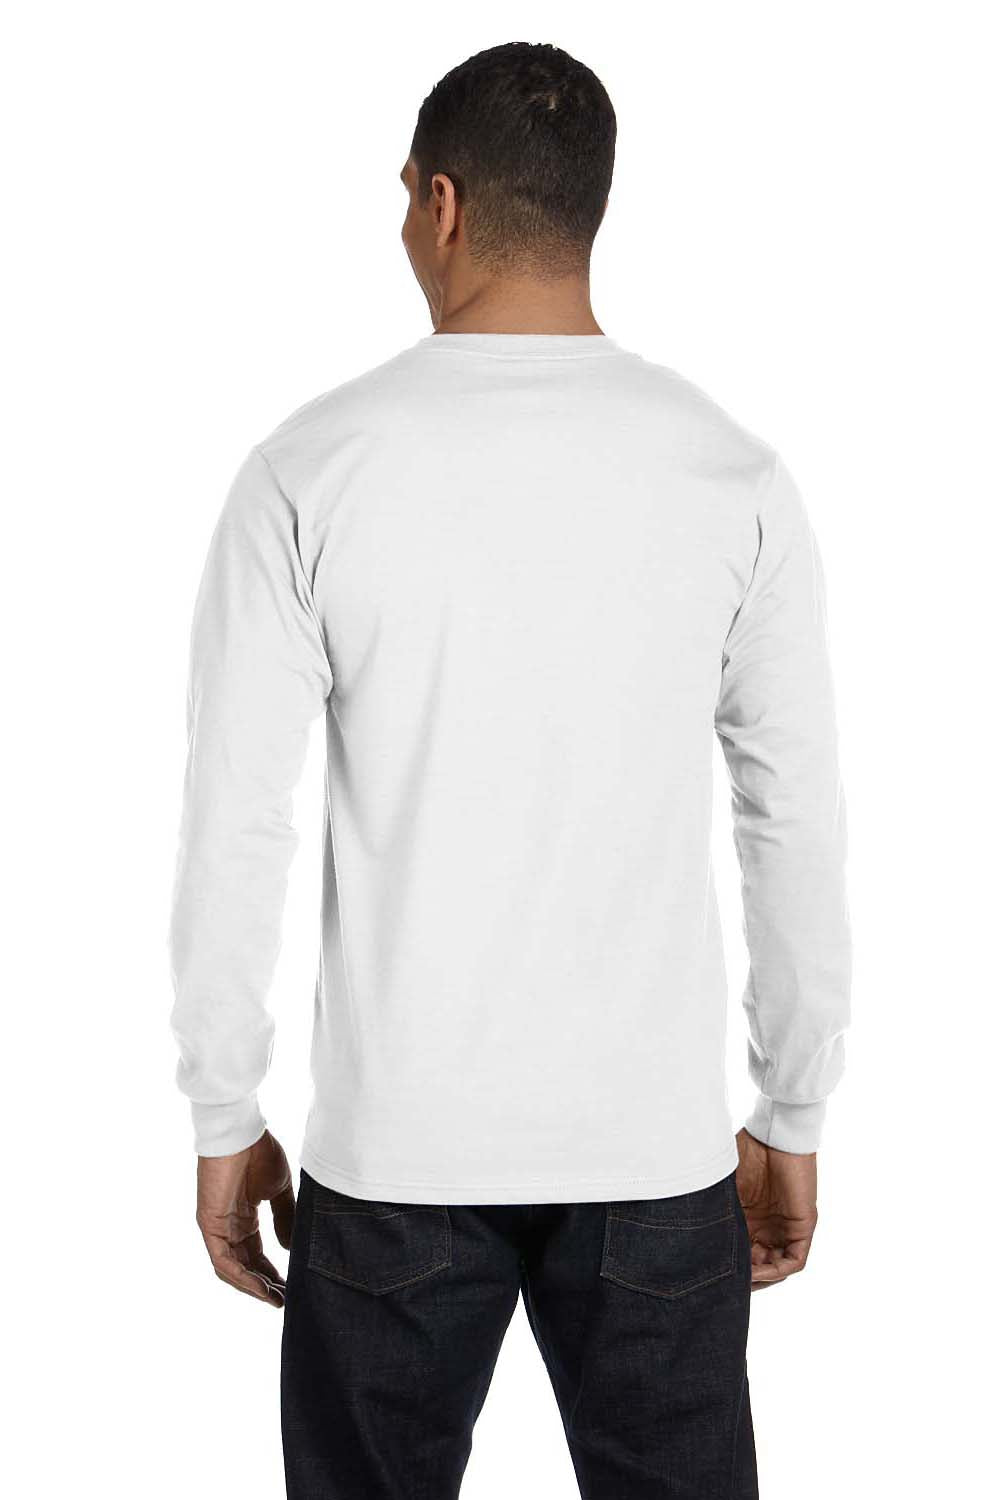 Hanes 5286 Mens ComfortSoft Long Sleeve Crewneck T-Shirt White Back